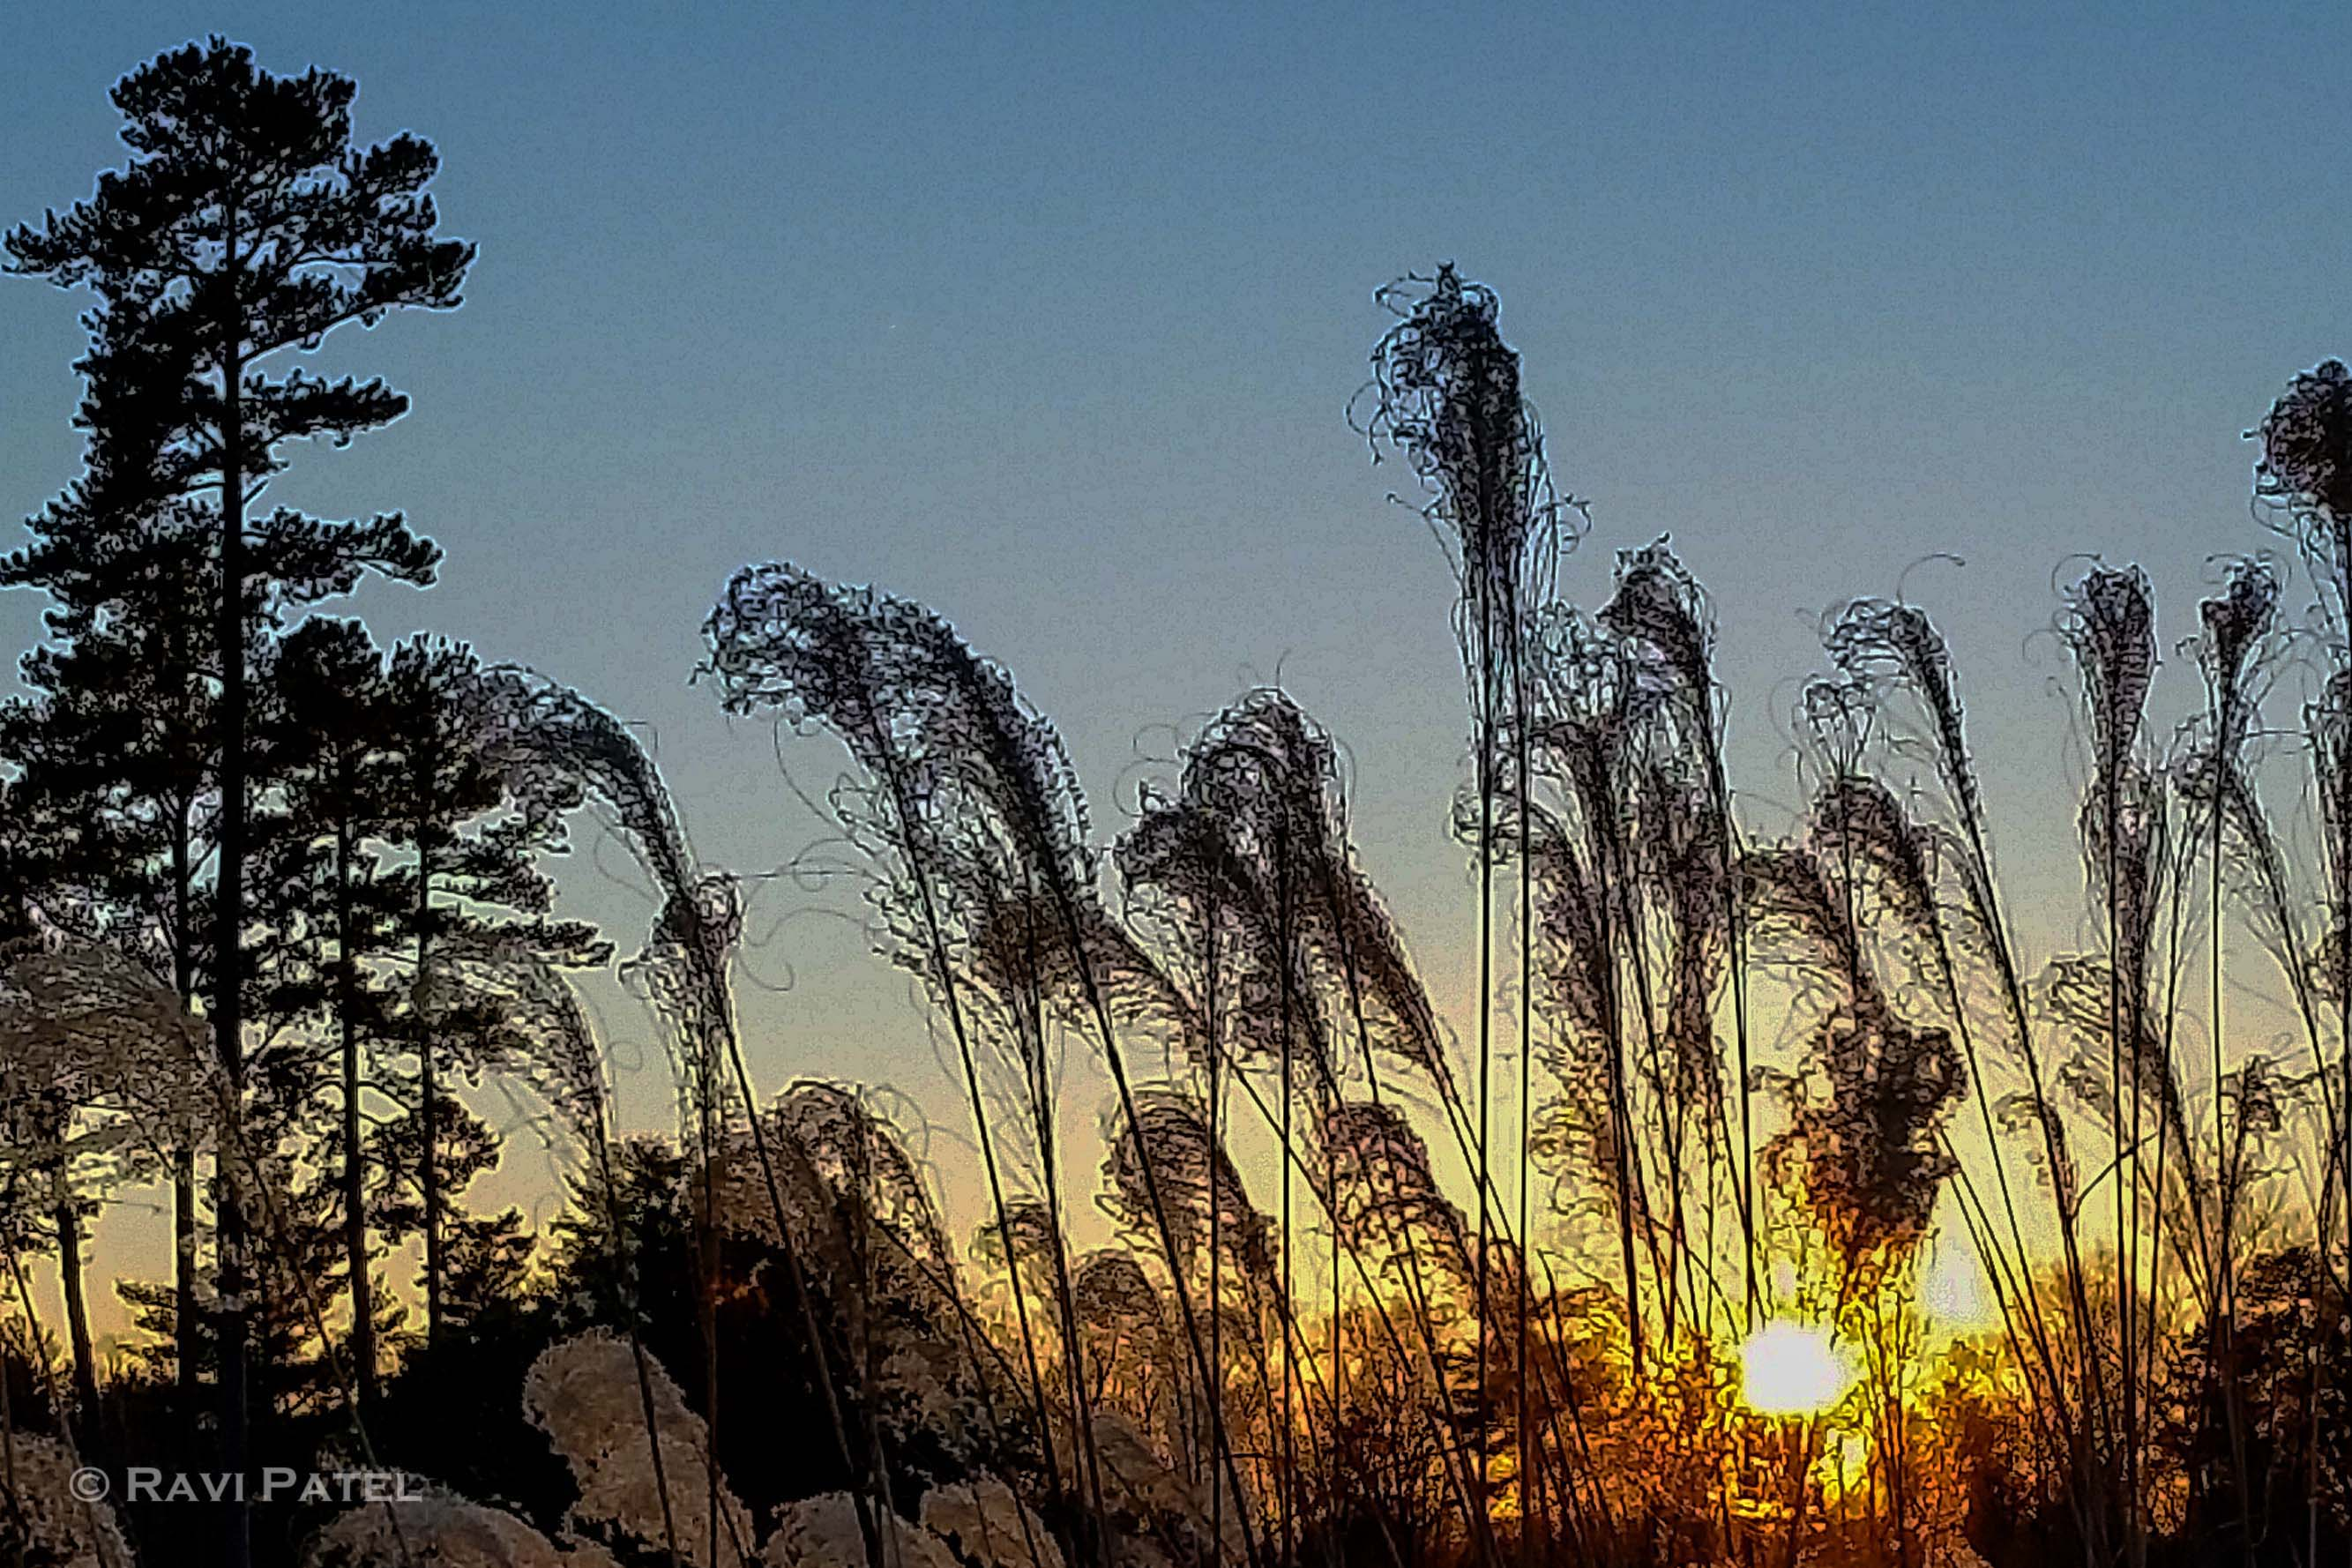 Tall Grass Silhouette at Sunset | Photos by Ravi